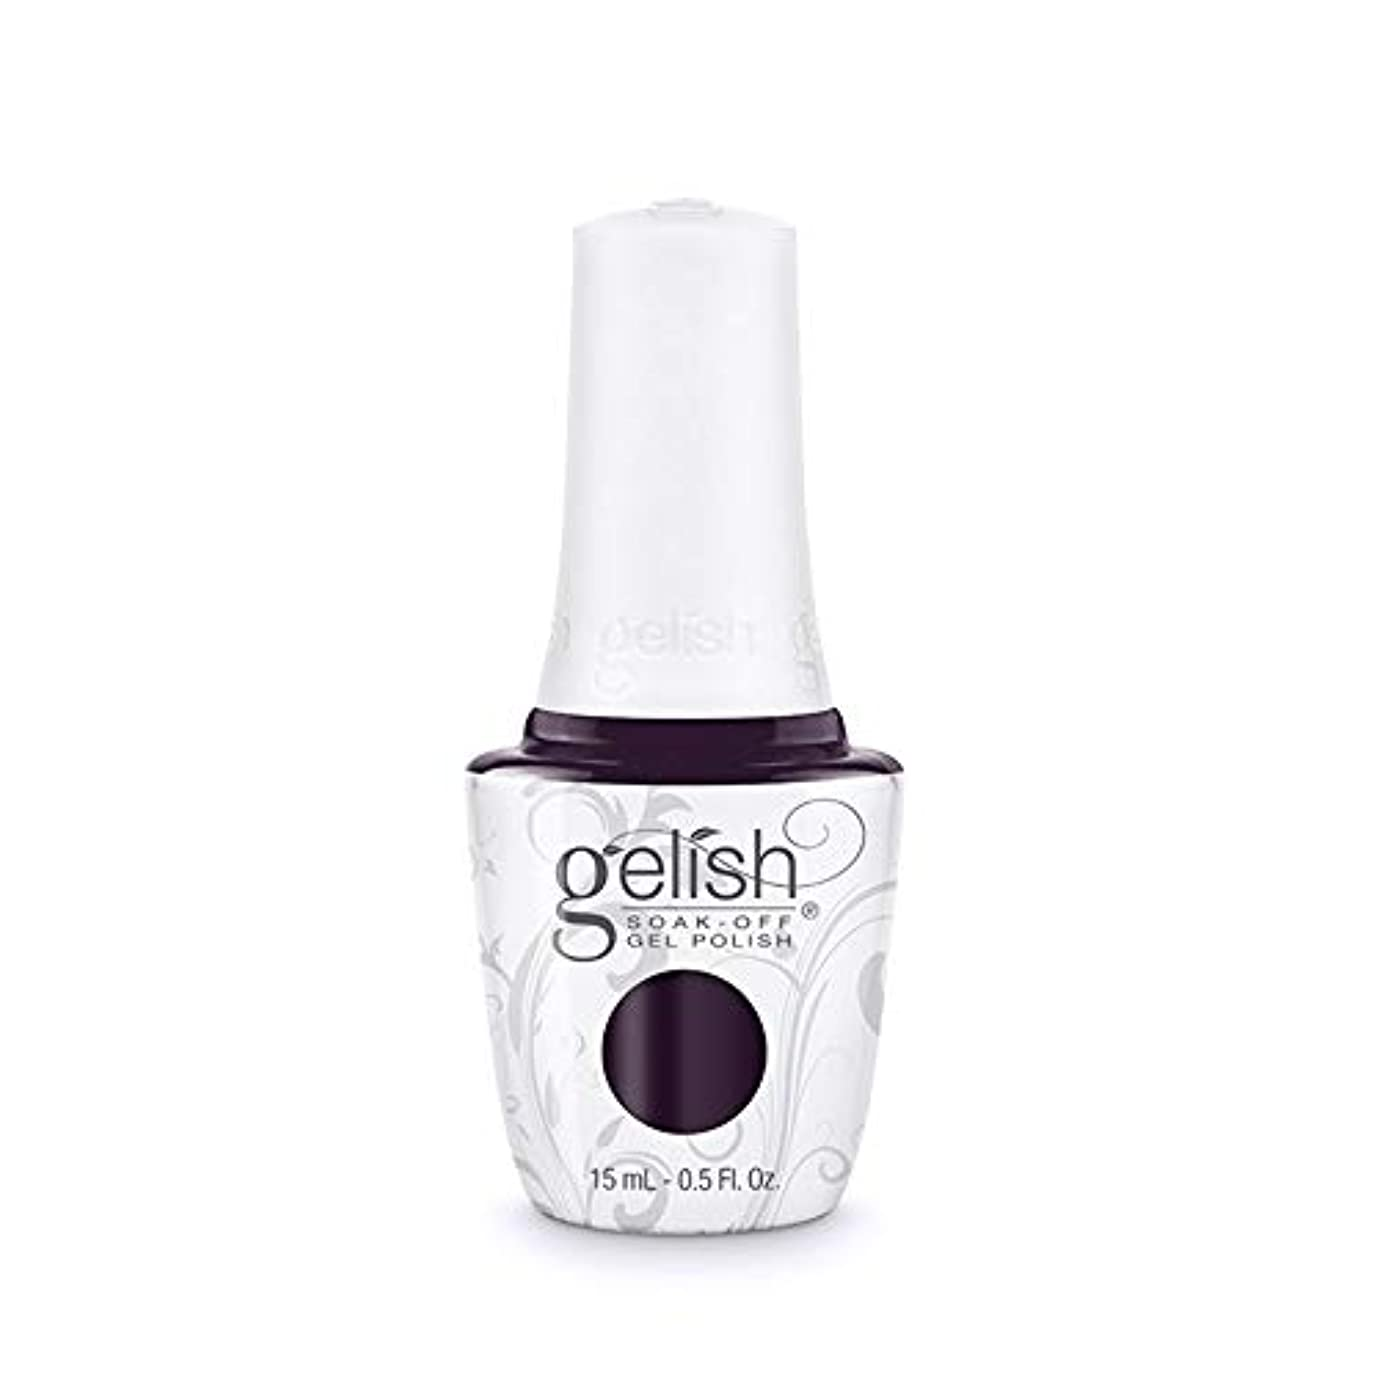 Harmony Gelish Gel Polish - 2017 Thrill Of The Chill - Don't Let The Frost Bite! - 0.5oz/15ml